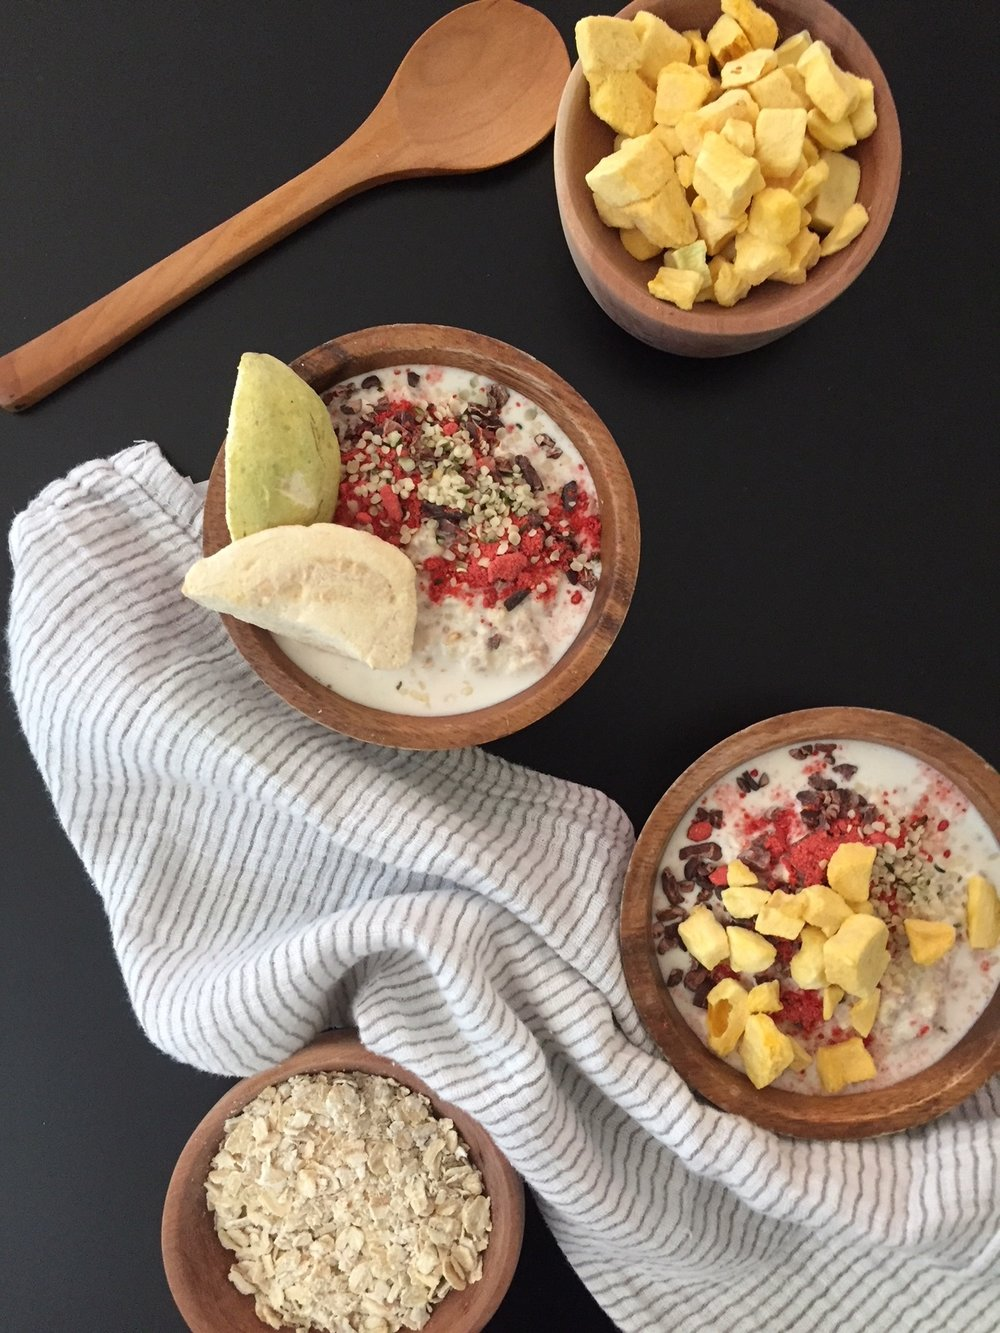 Over night oats con topping de guayaba y mango crujiente.